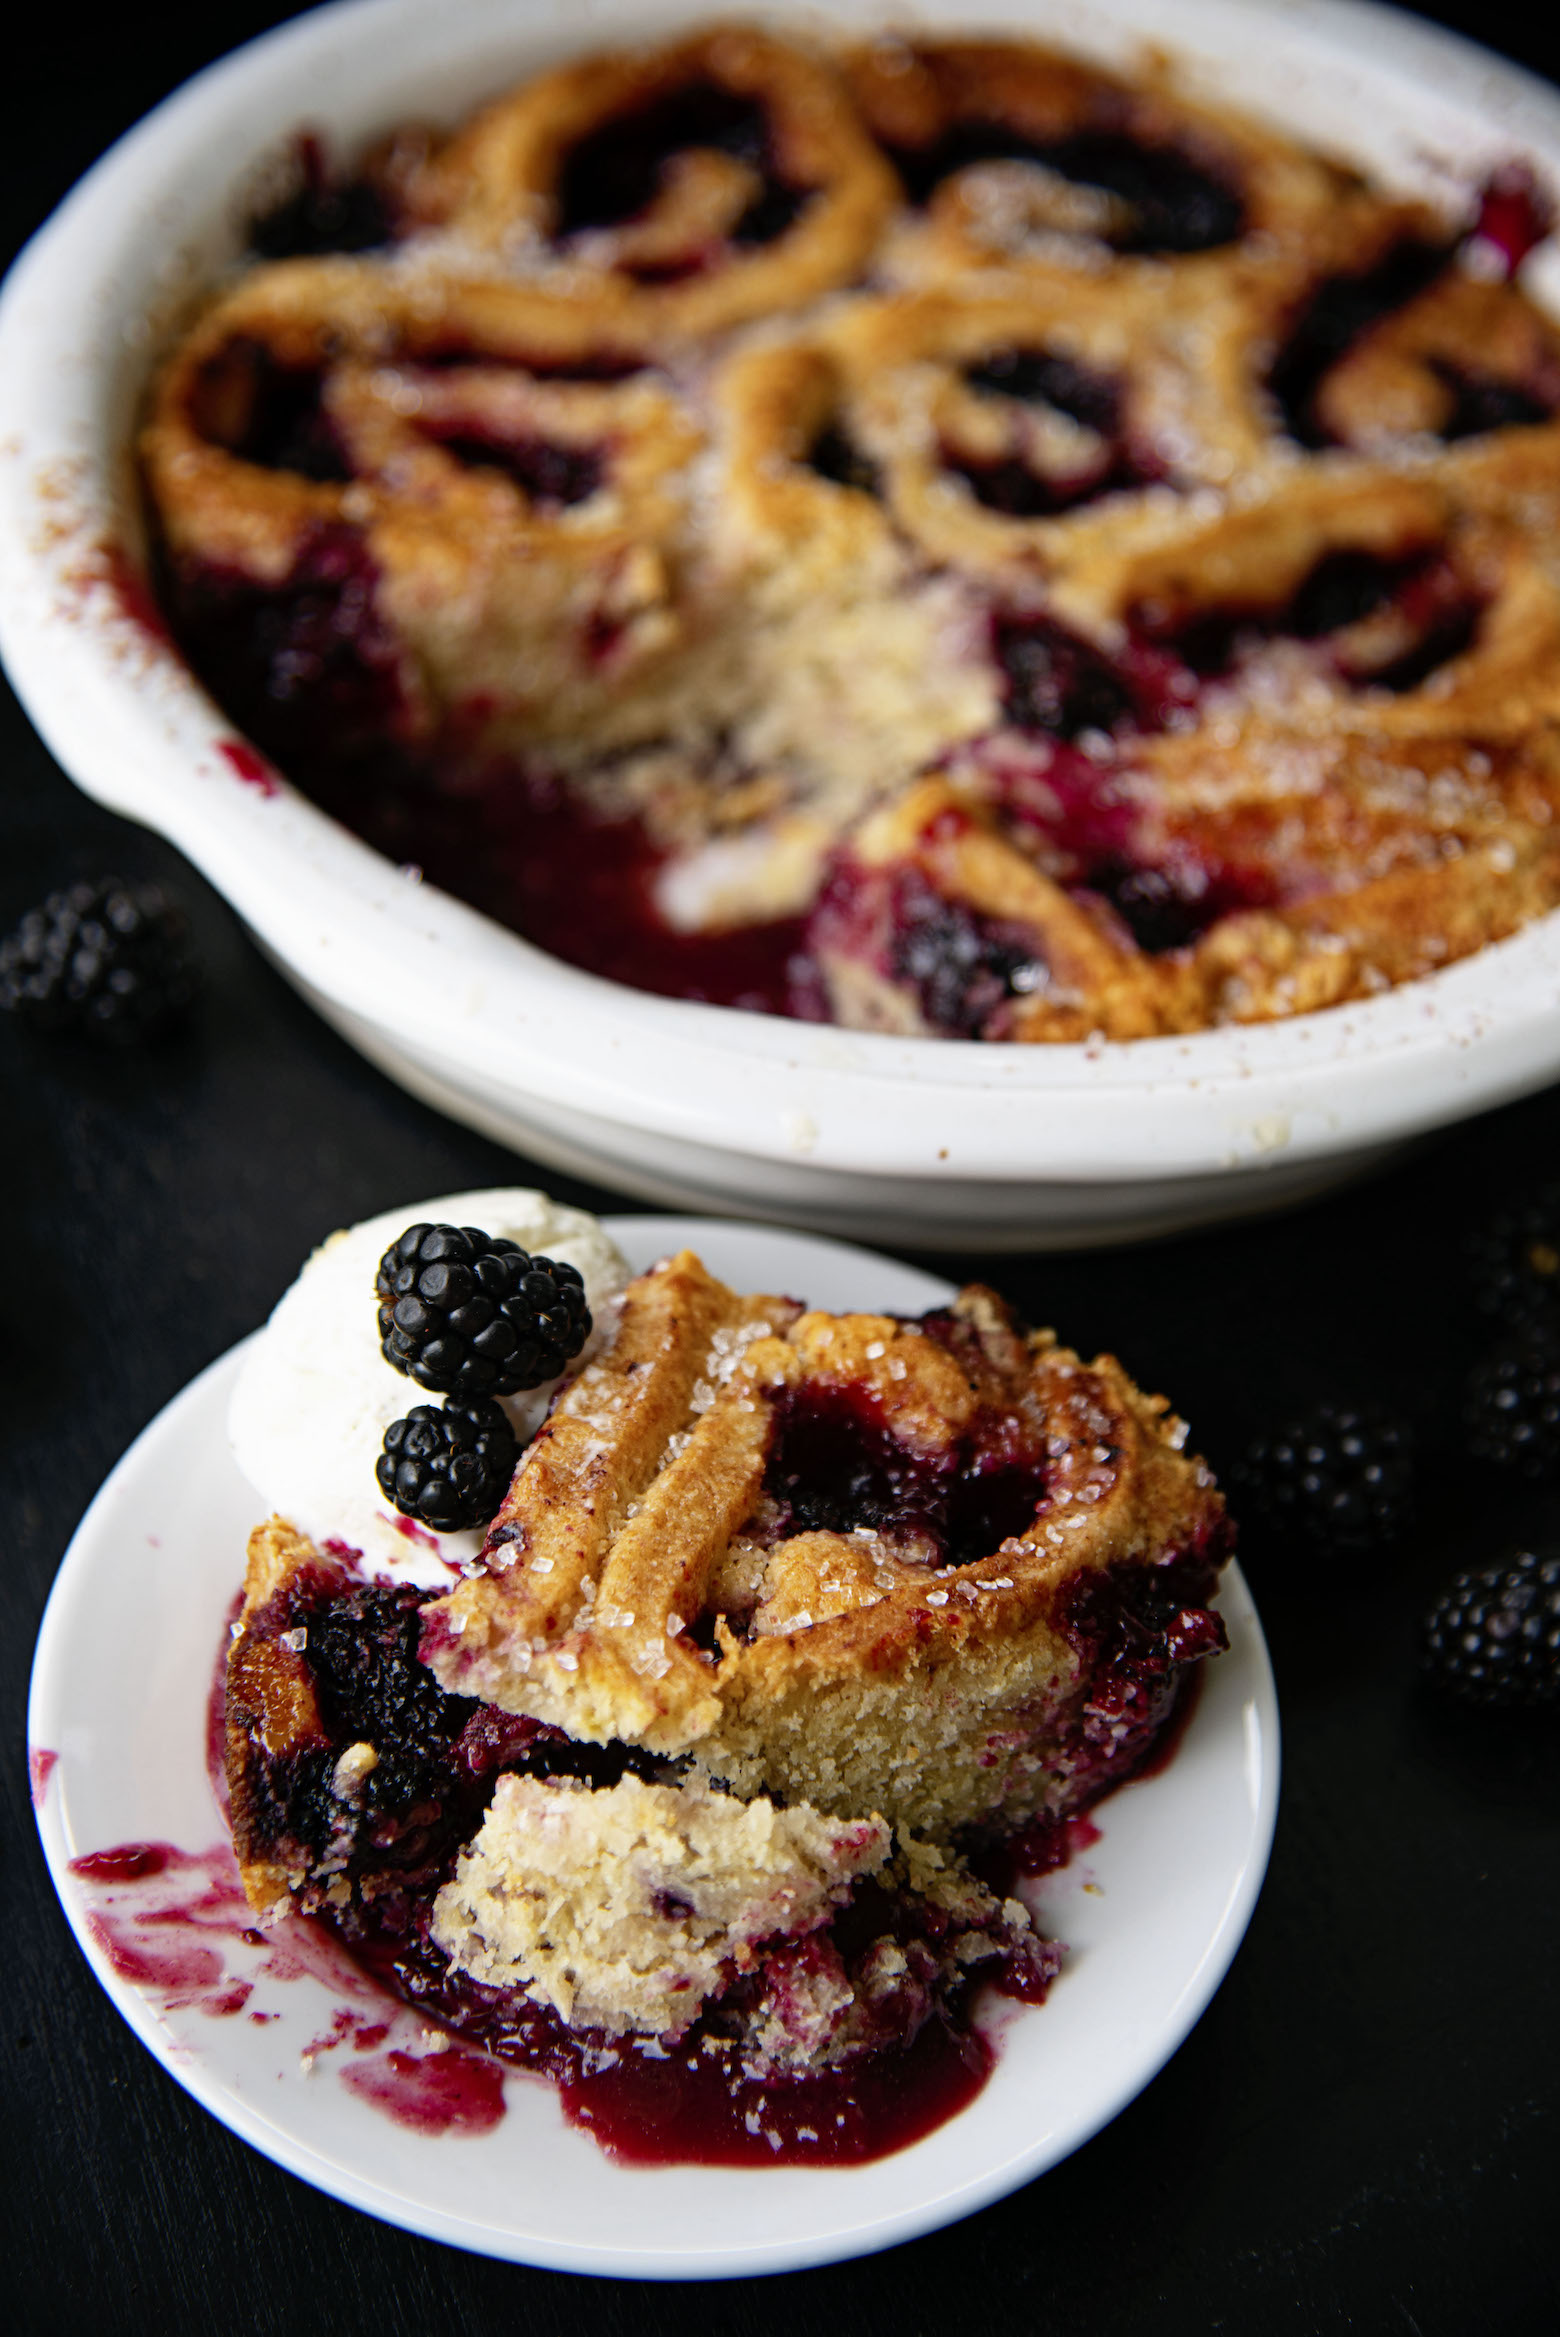 Cobbler on a plate with remaining cobbler in background.